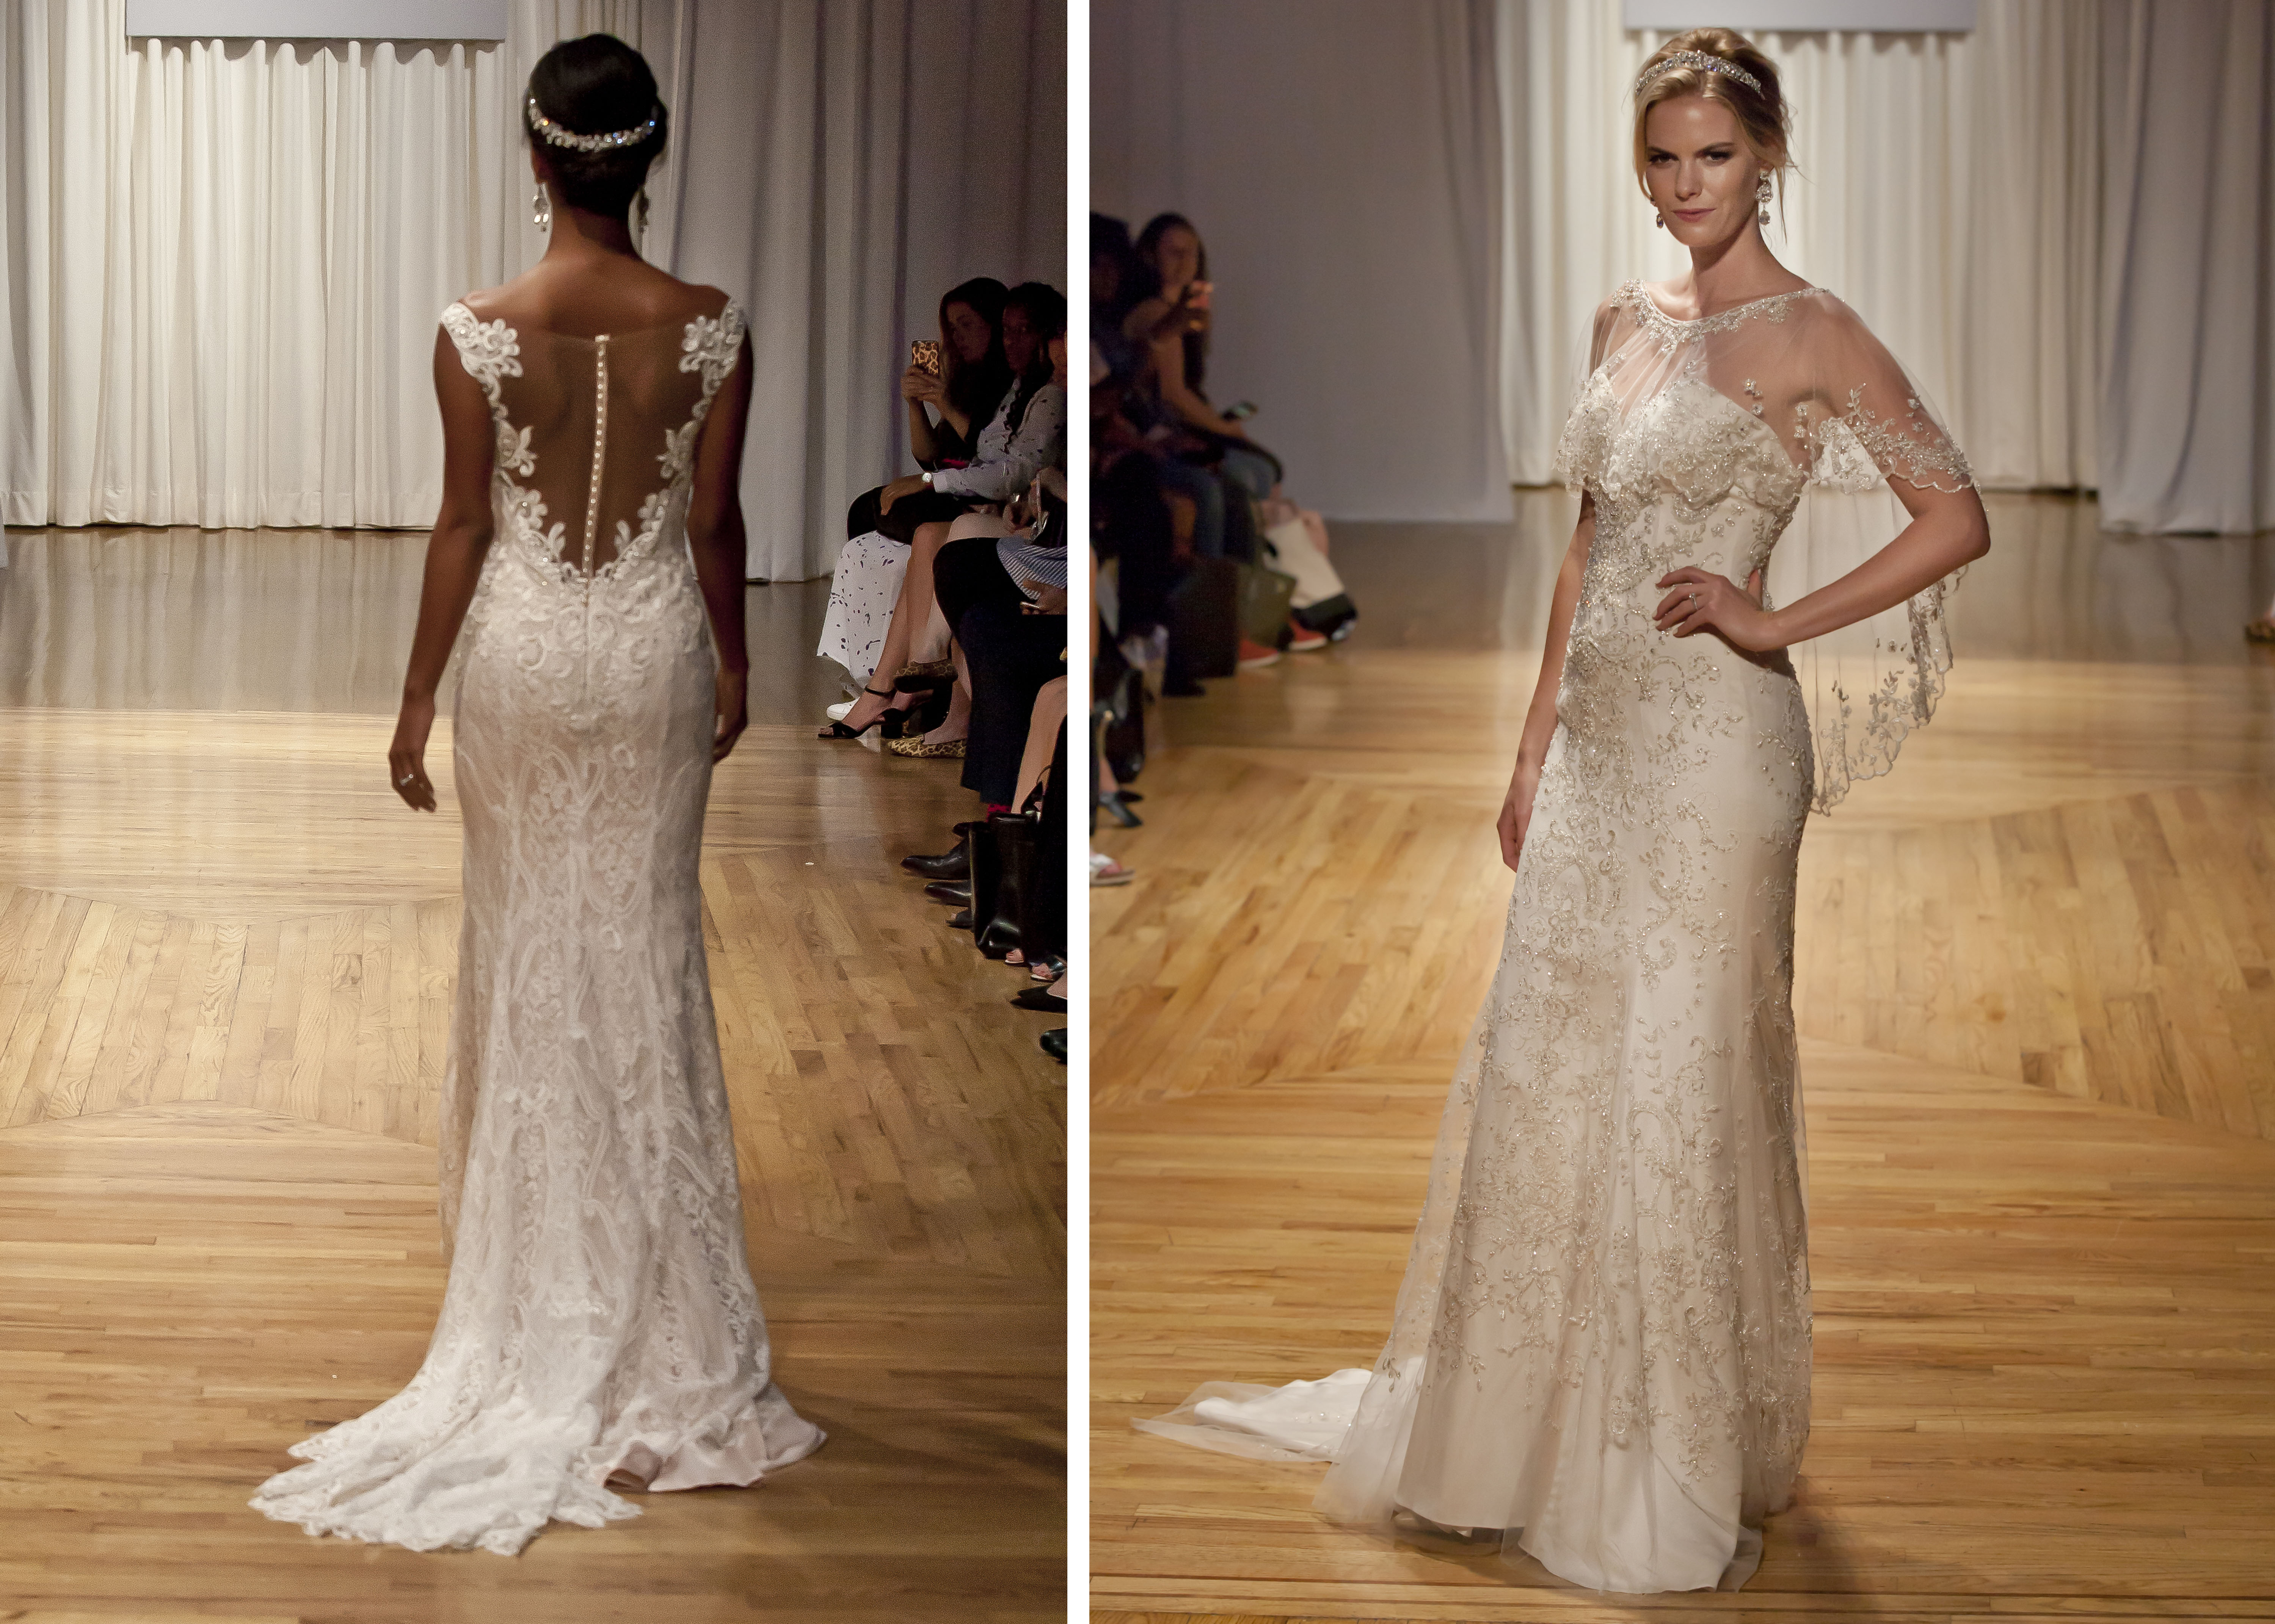 Casablanca Bridal Press Show Sneek Peak